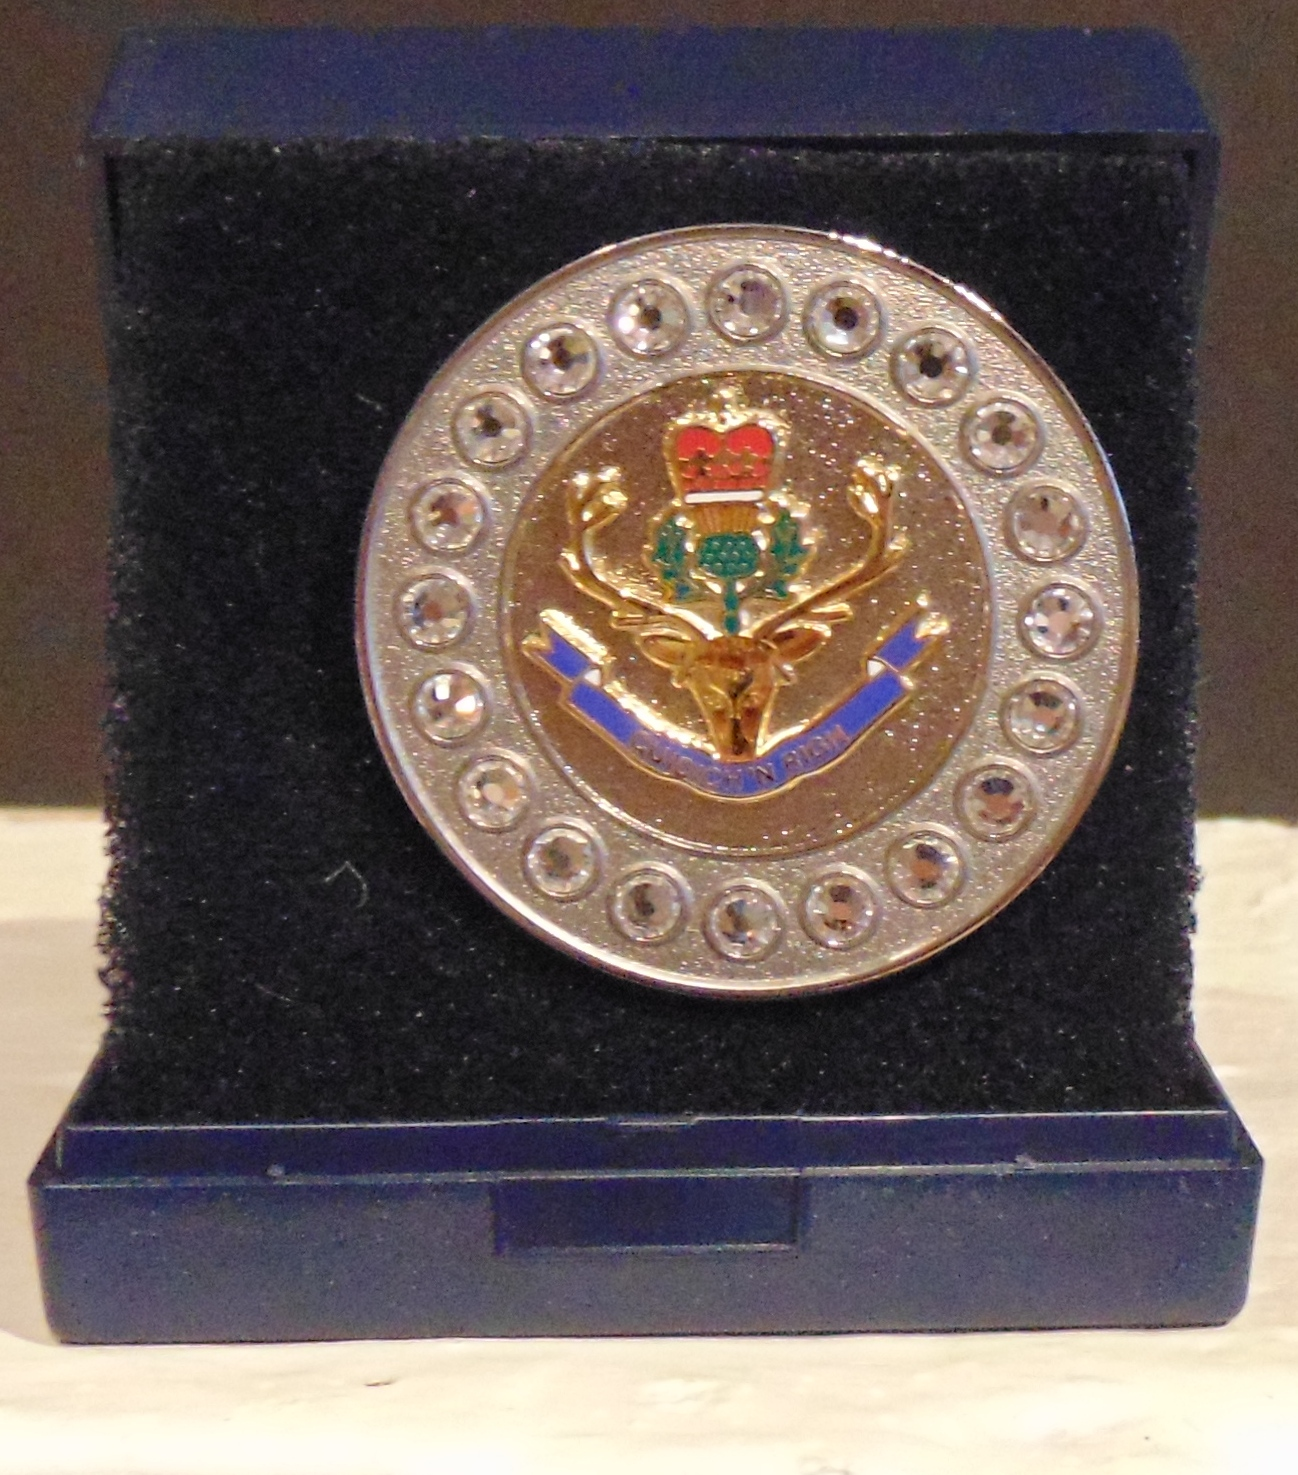 The Queen's Own Highlanders Regimental Brooch